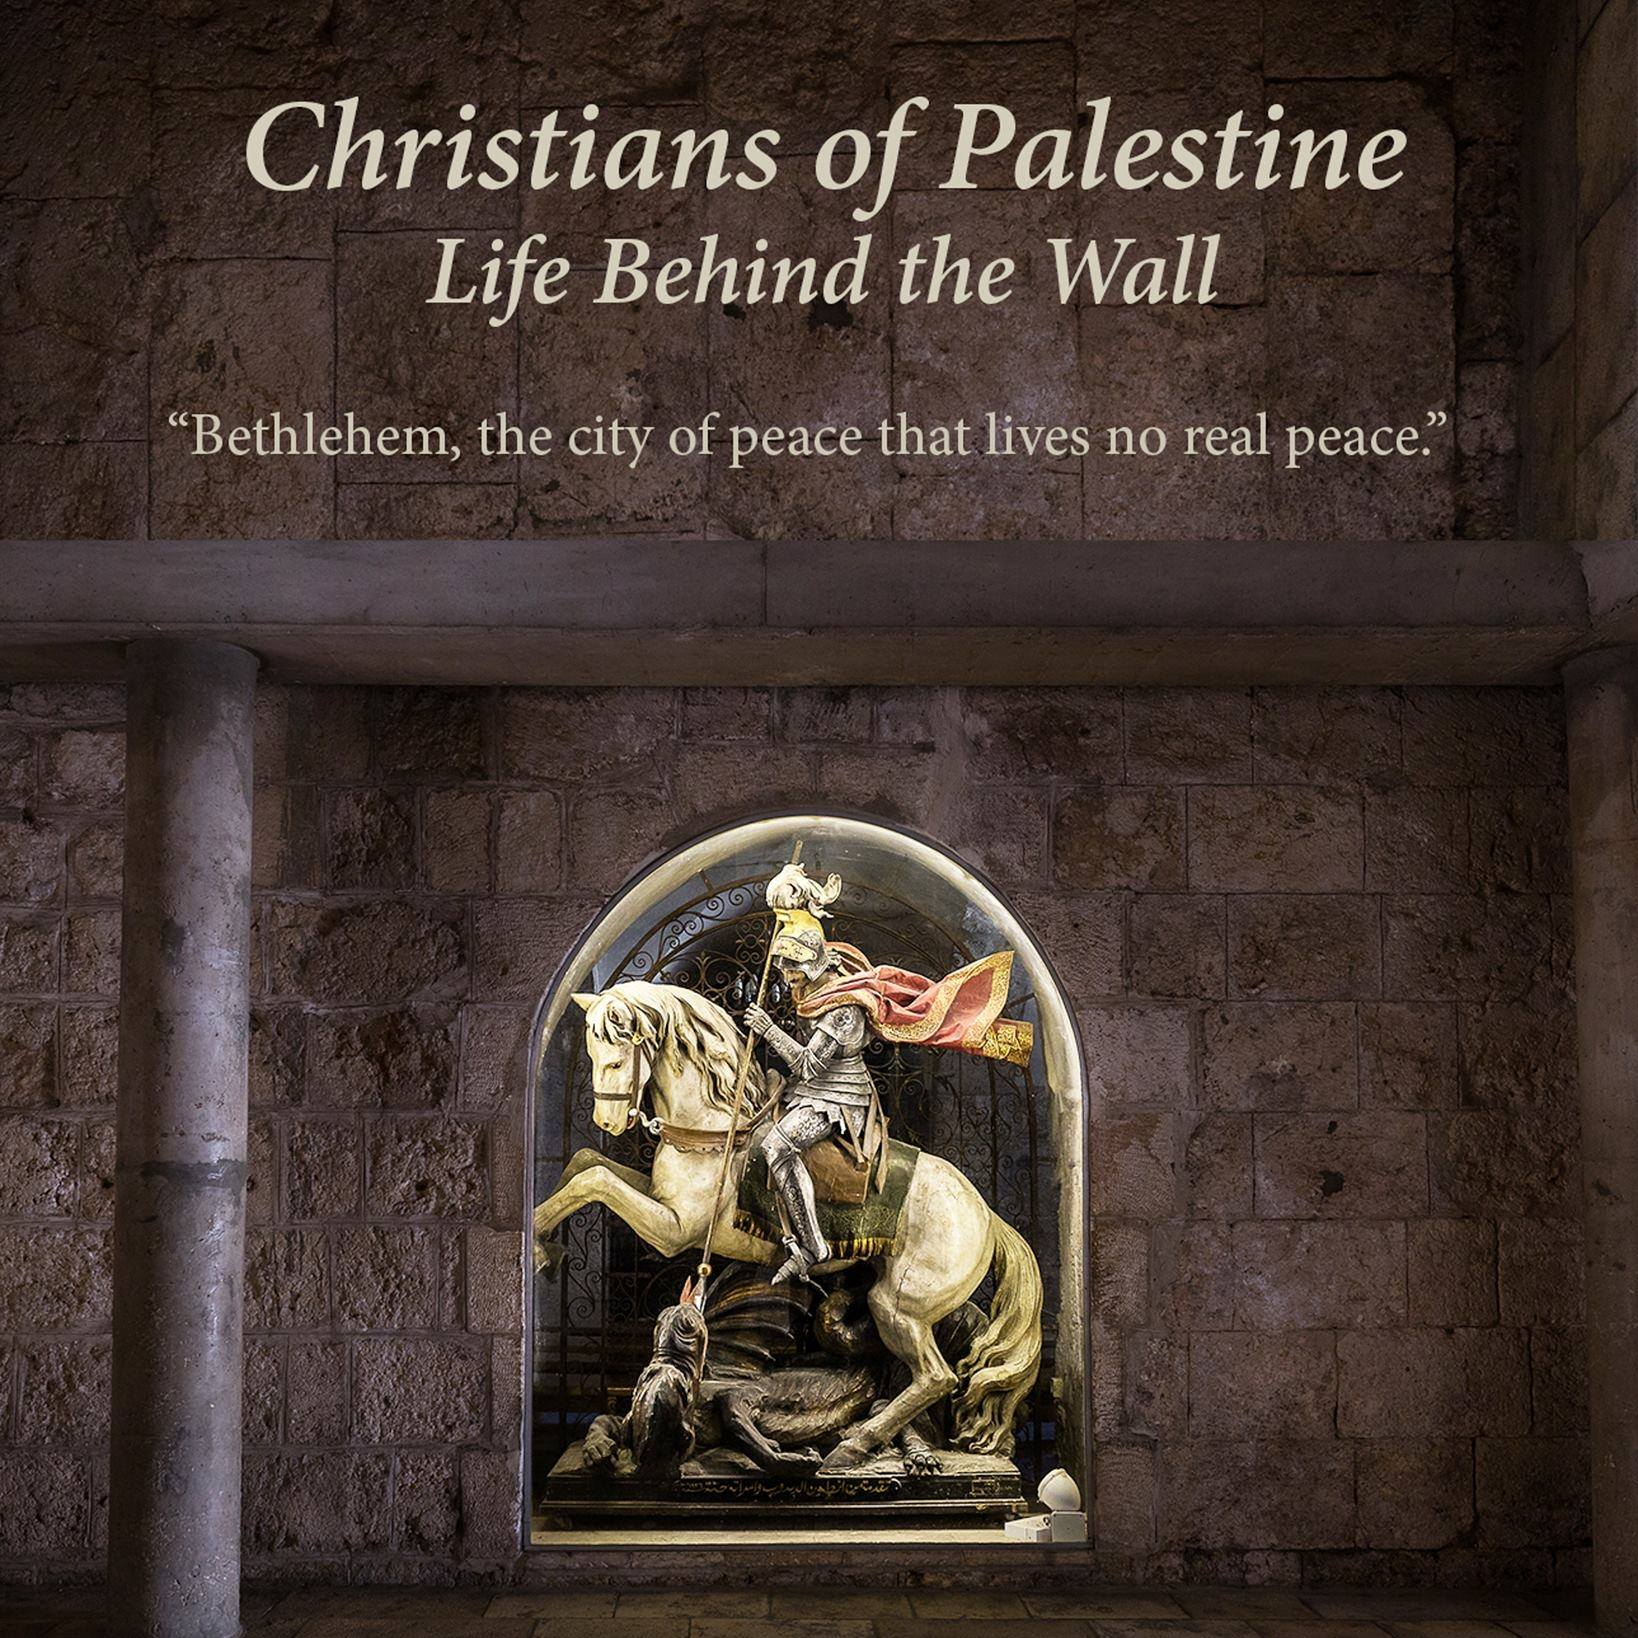 Christians_of_Palestine_Life_Behind_the_Wall.jpg